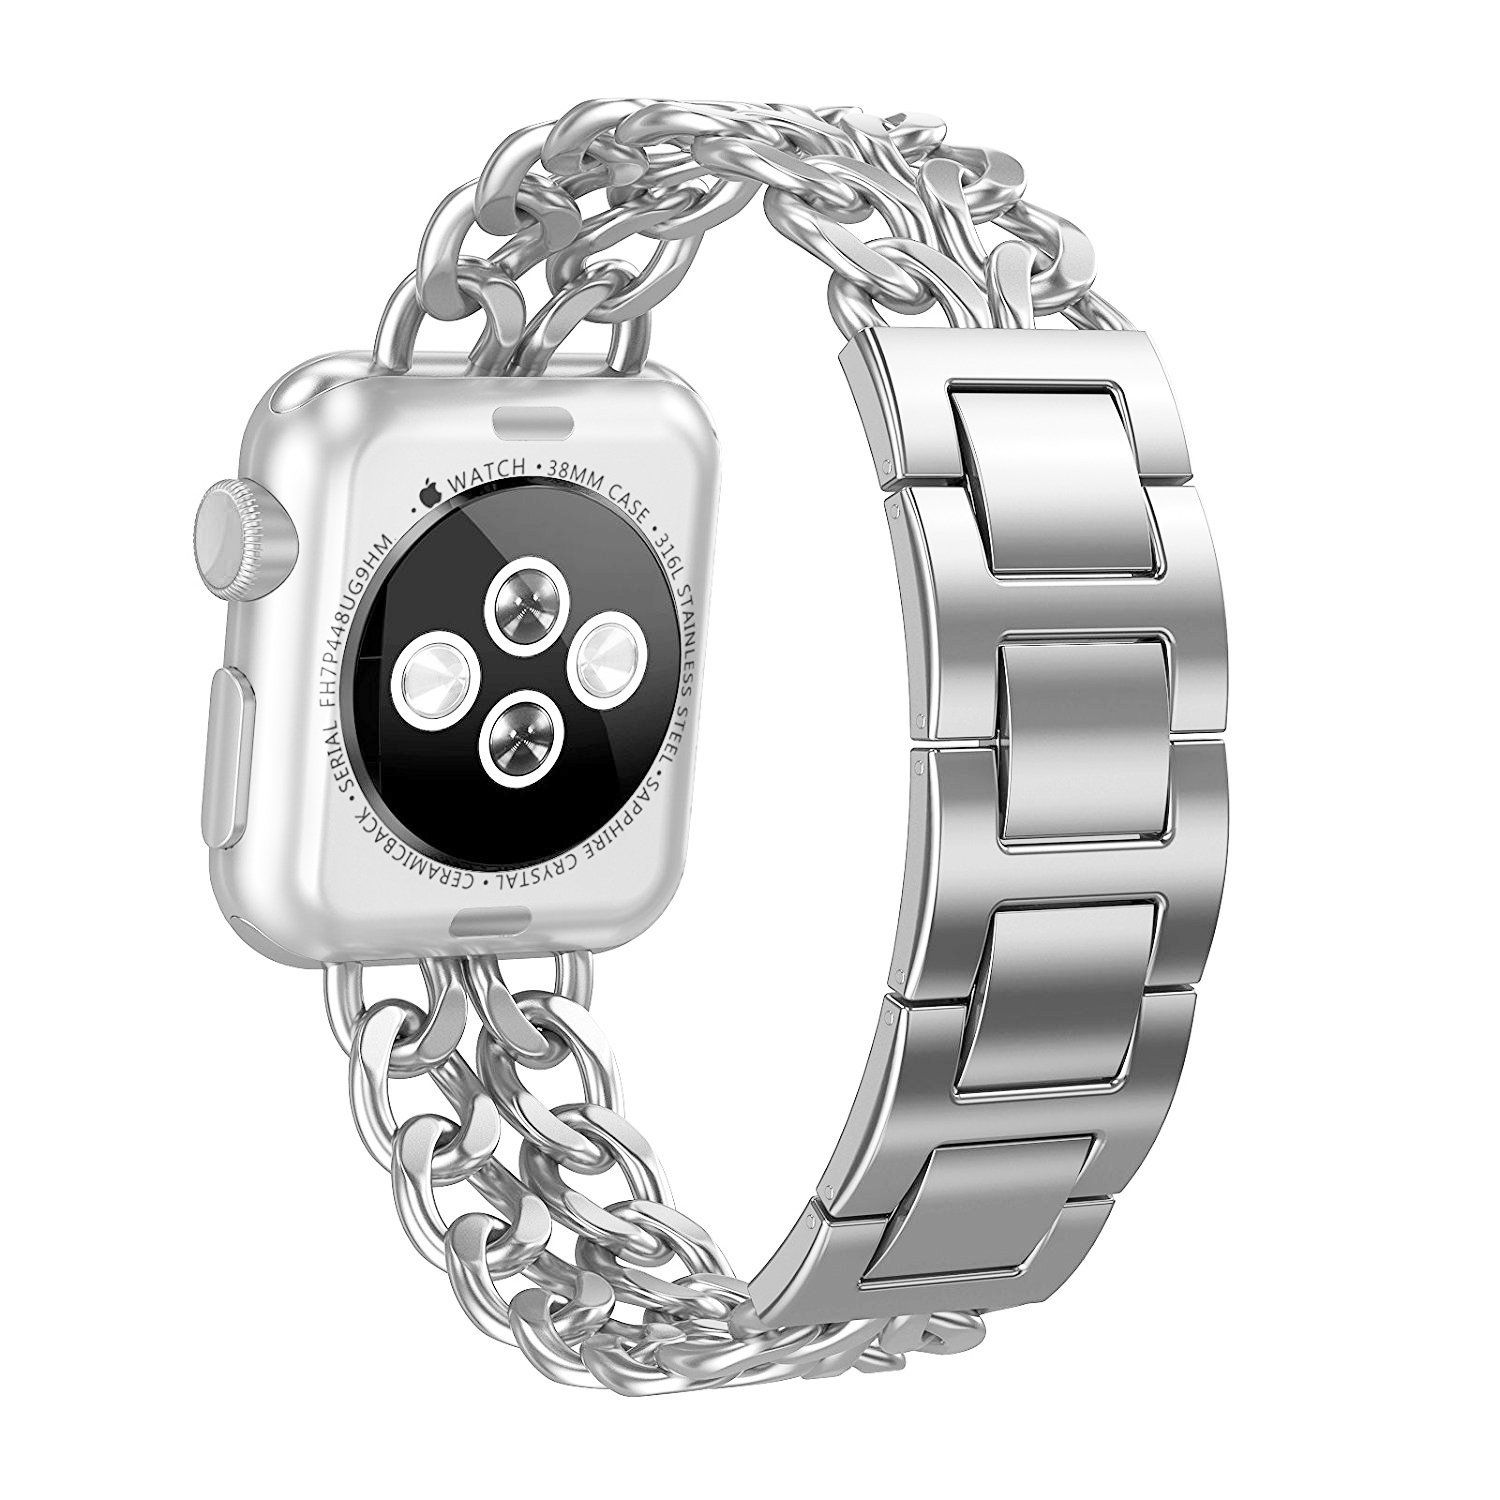 Apple Watch Band, Aokay 38mm Stainless Steel